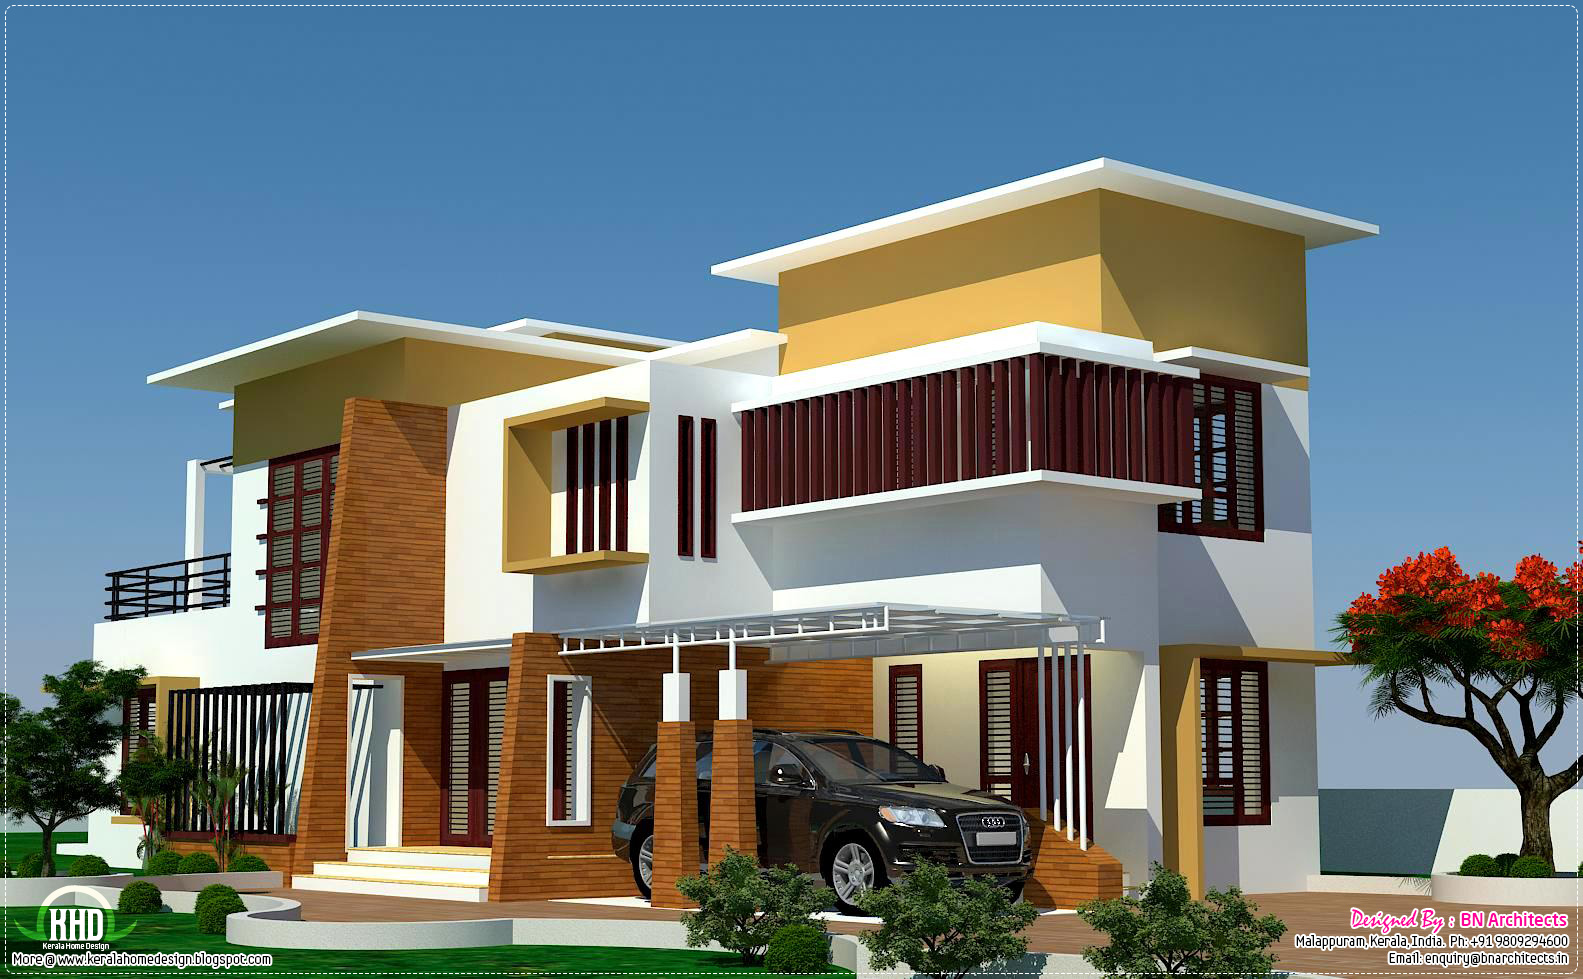 4 bedroom modern villa design home design ideas for you for Modern villa design